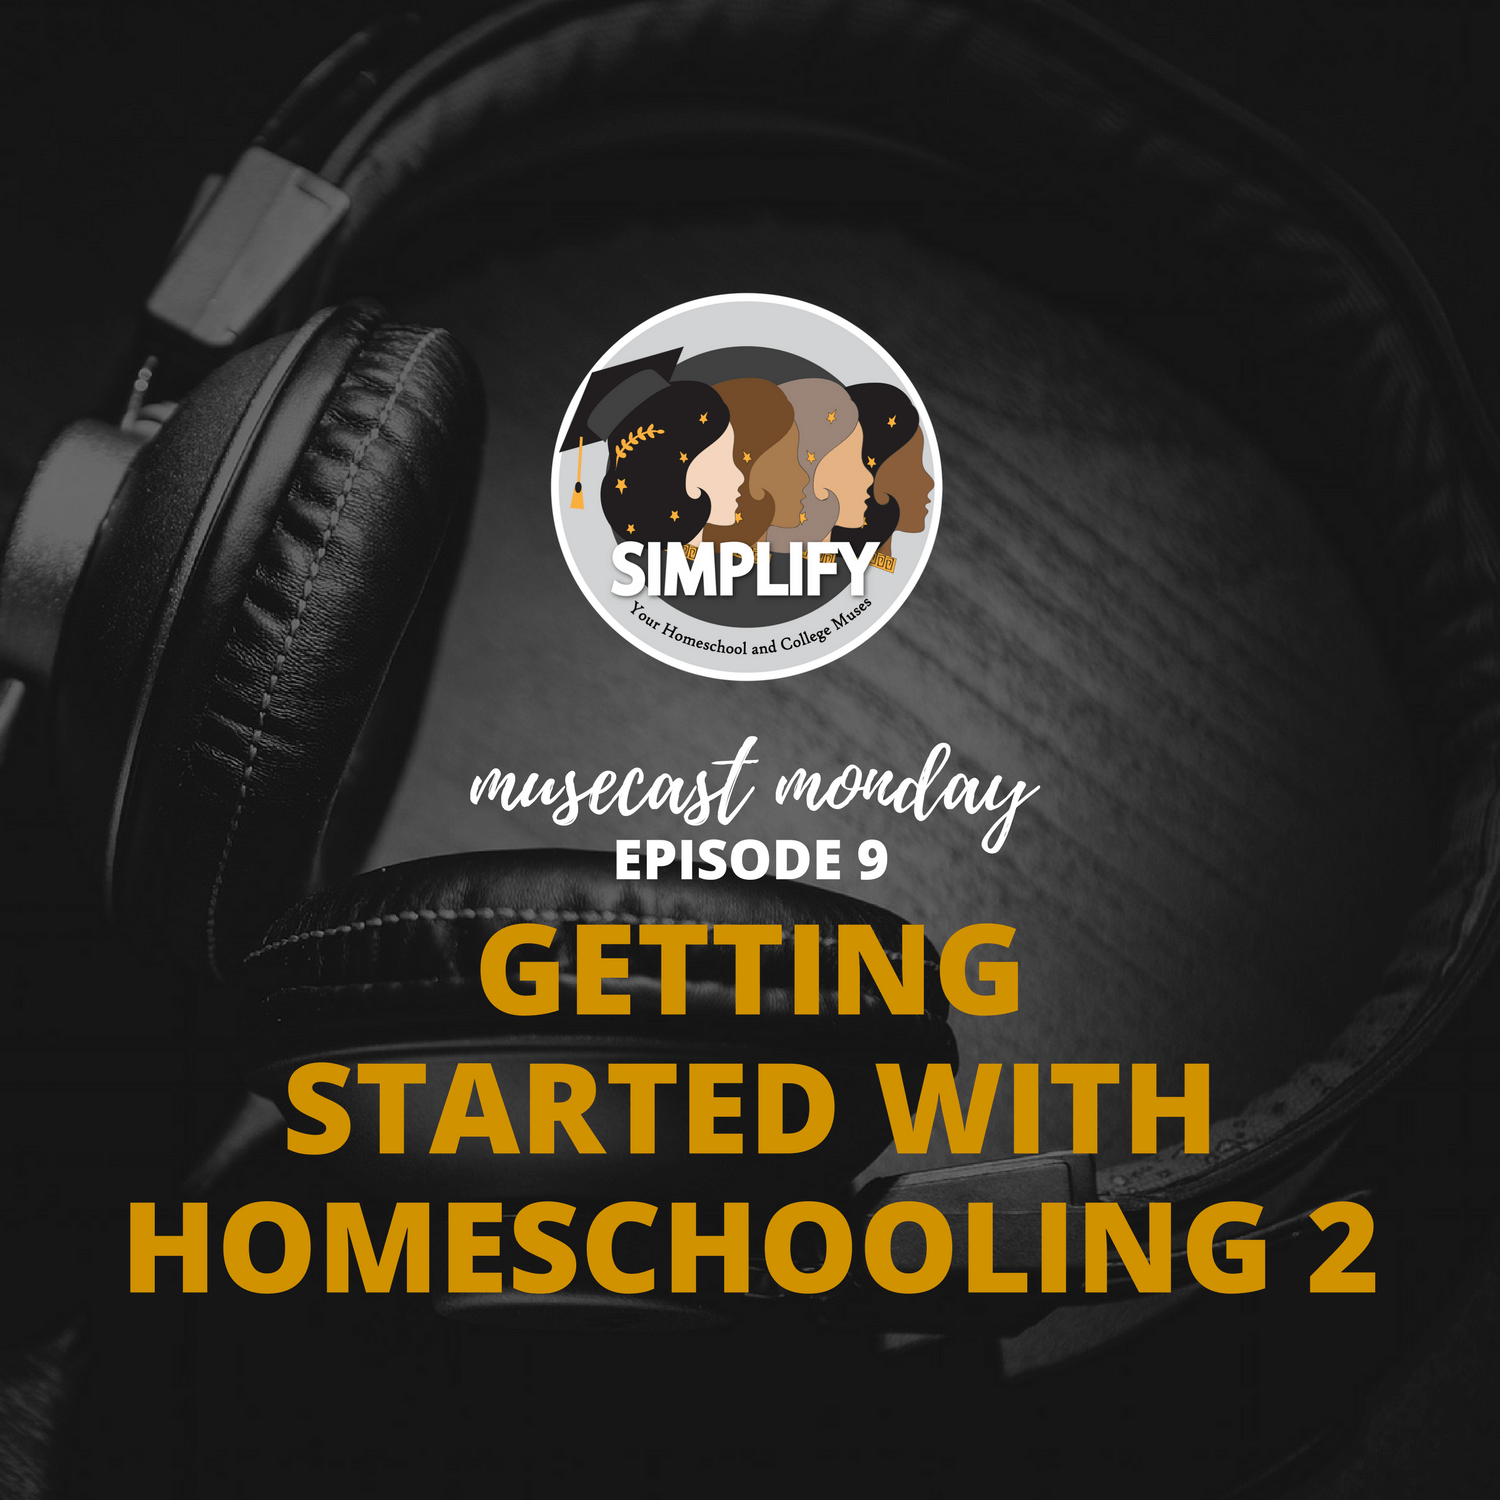 Getting Started with Homeschooling Part 2